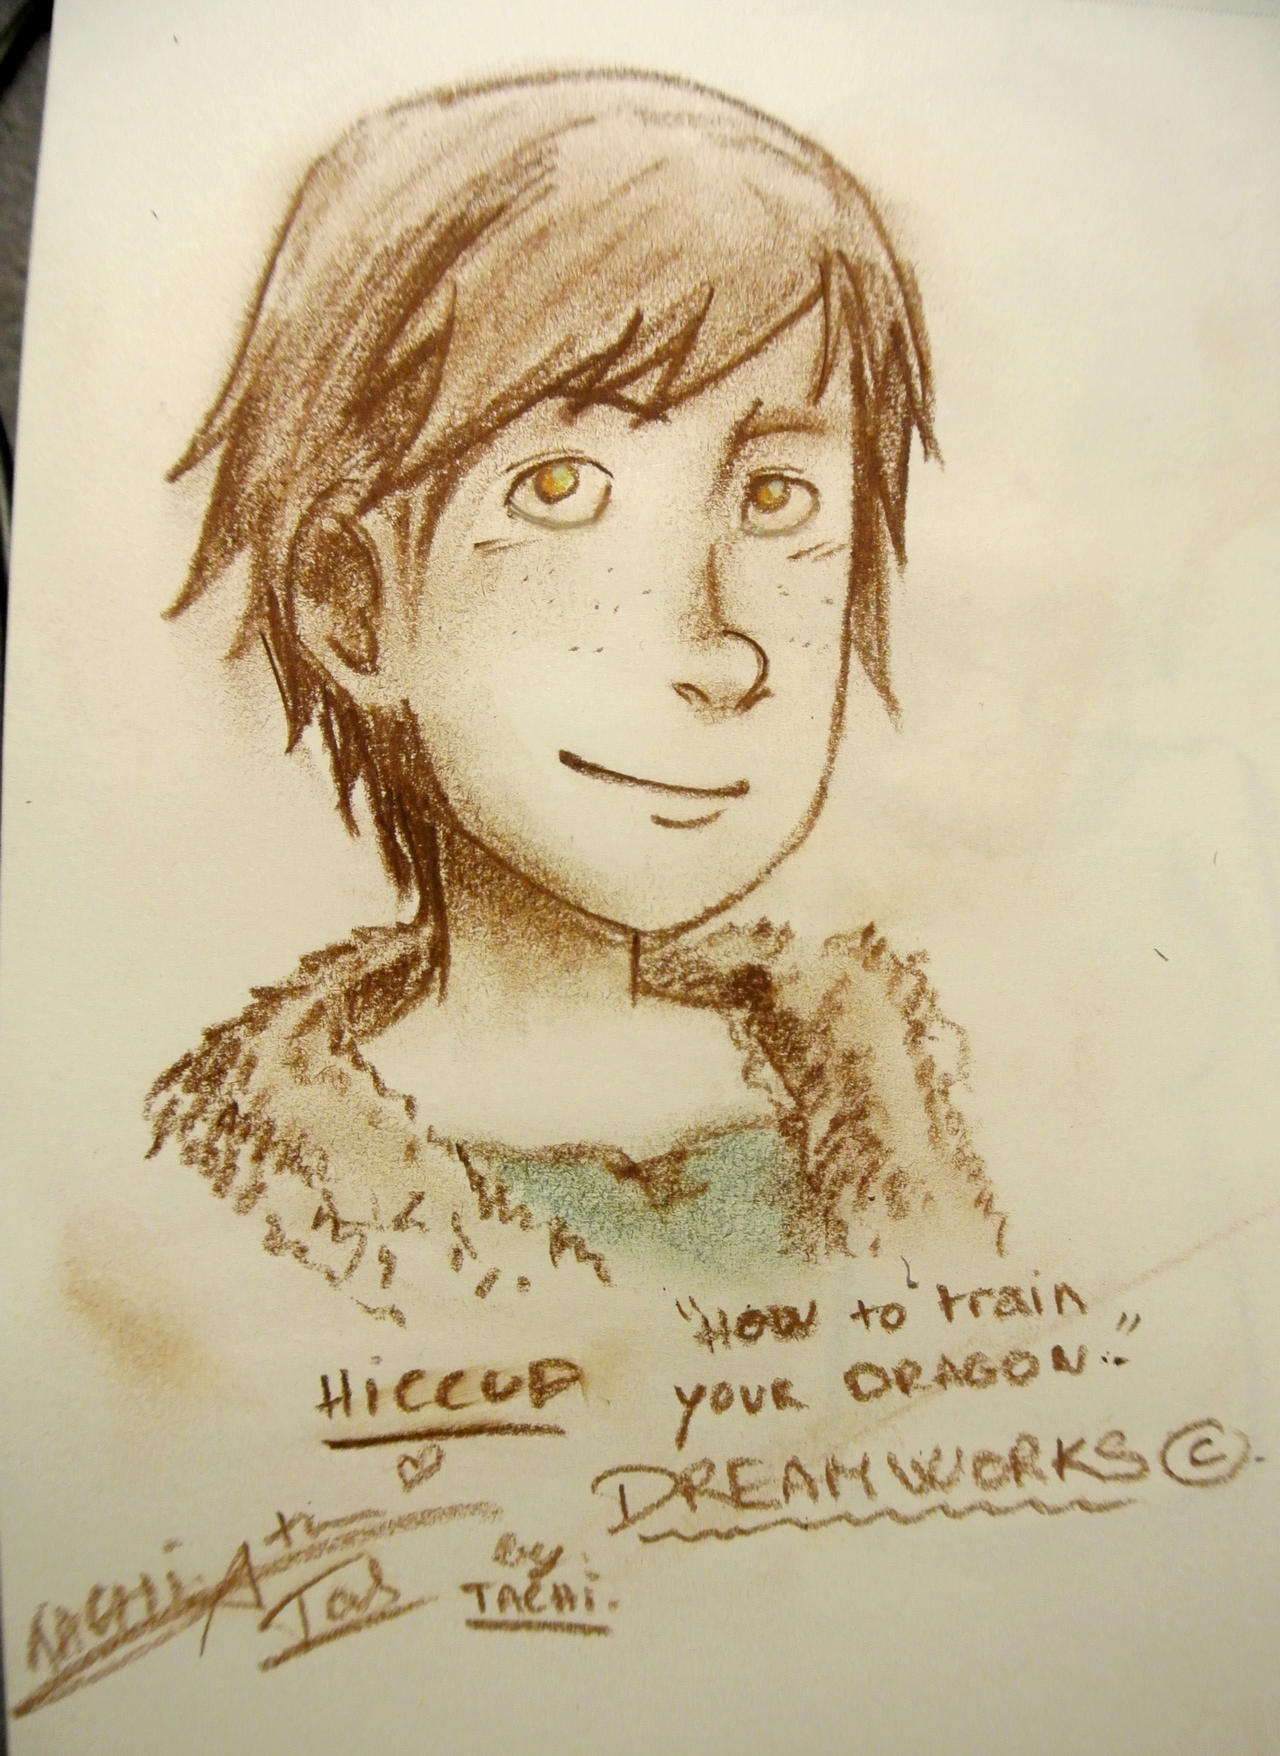 Hiccup how to train your dragon by nami chwann on deviantart hiccup how to train your dragon by nami chwann ccuart Choice Image